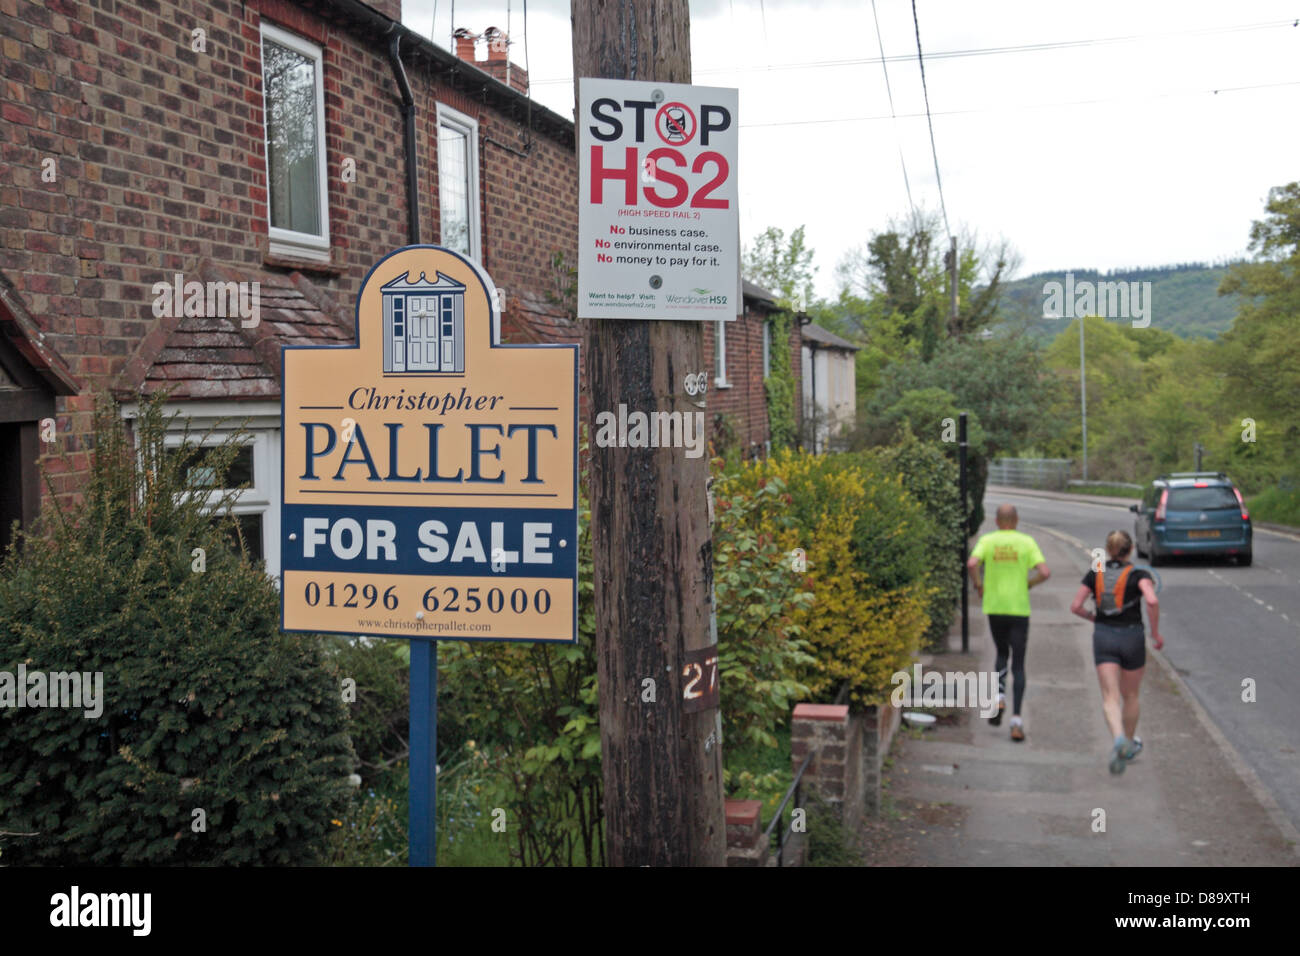 A 'Stop HS2' poster on a telephone pole beside a house 'for sale' sign, in Wendover, Buckinghamshire, - Stock Image